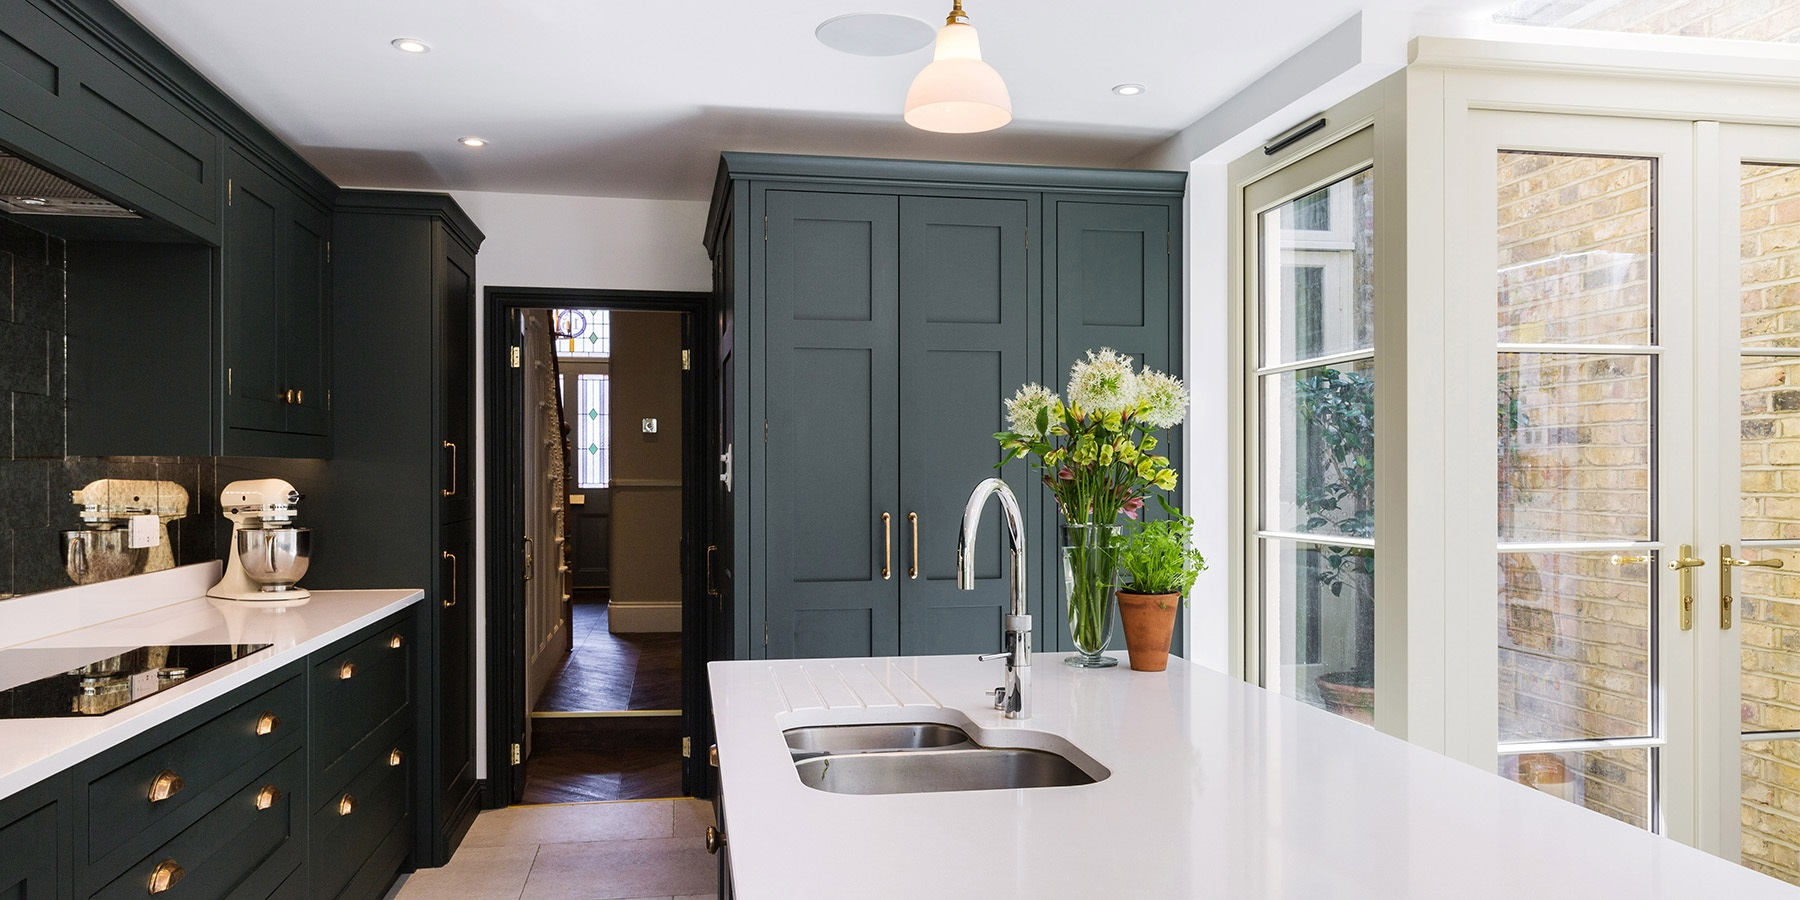 Burlanes Bespoke Shaker Kitchen - Handmade Hoyden cabinetry, central island and larder, handpainted in Farrow & Ball 'Studio Green'.